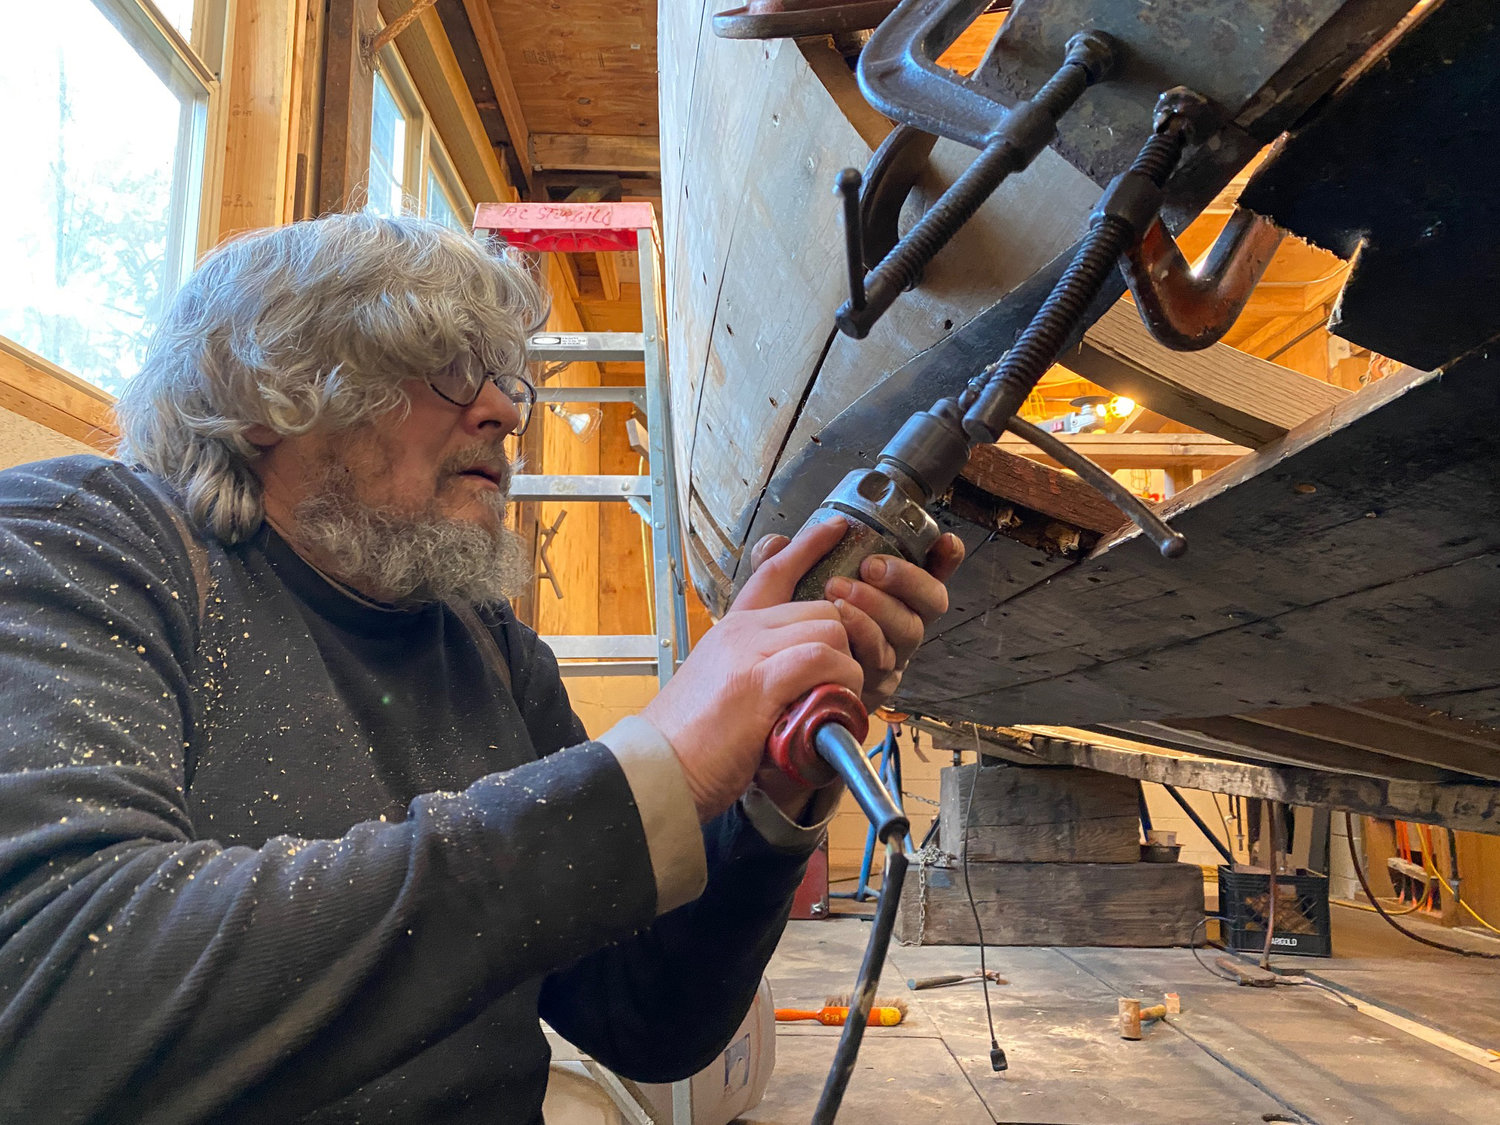 Steve Alaniz, a shipwright, performing restoration work on the vessel. Alaniz once worked for the same Alaska cannery that the boat originally fished for.